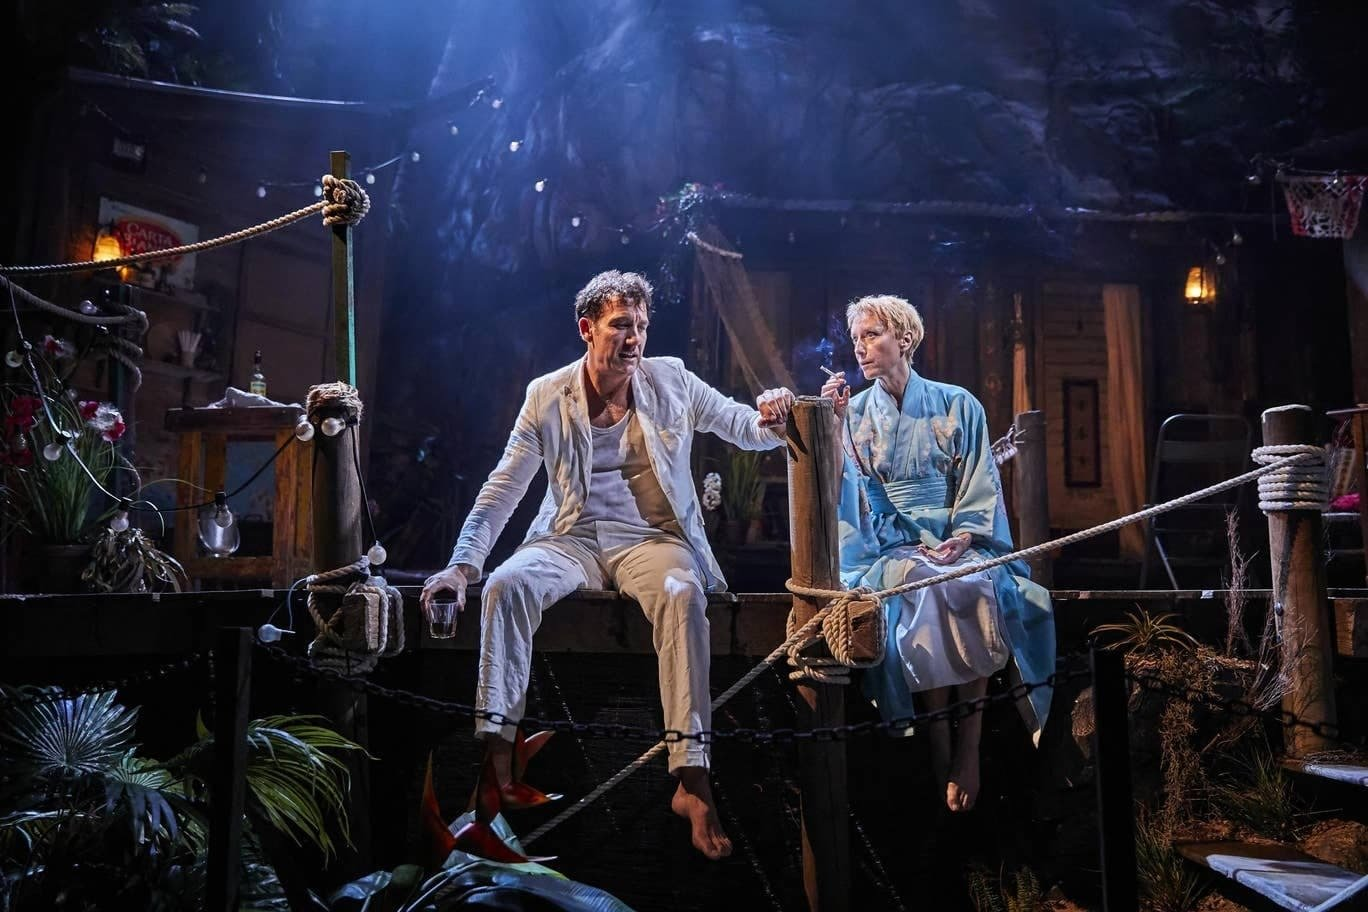 London Theatre Review: The Night of the Iguana at the Noel Coward Theatre